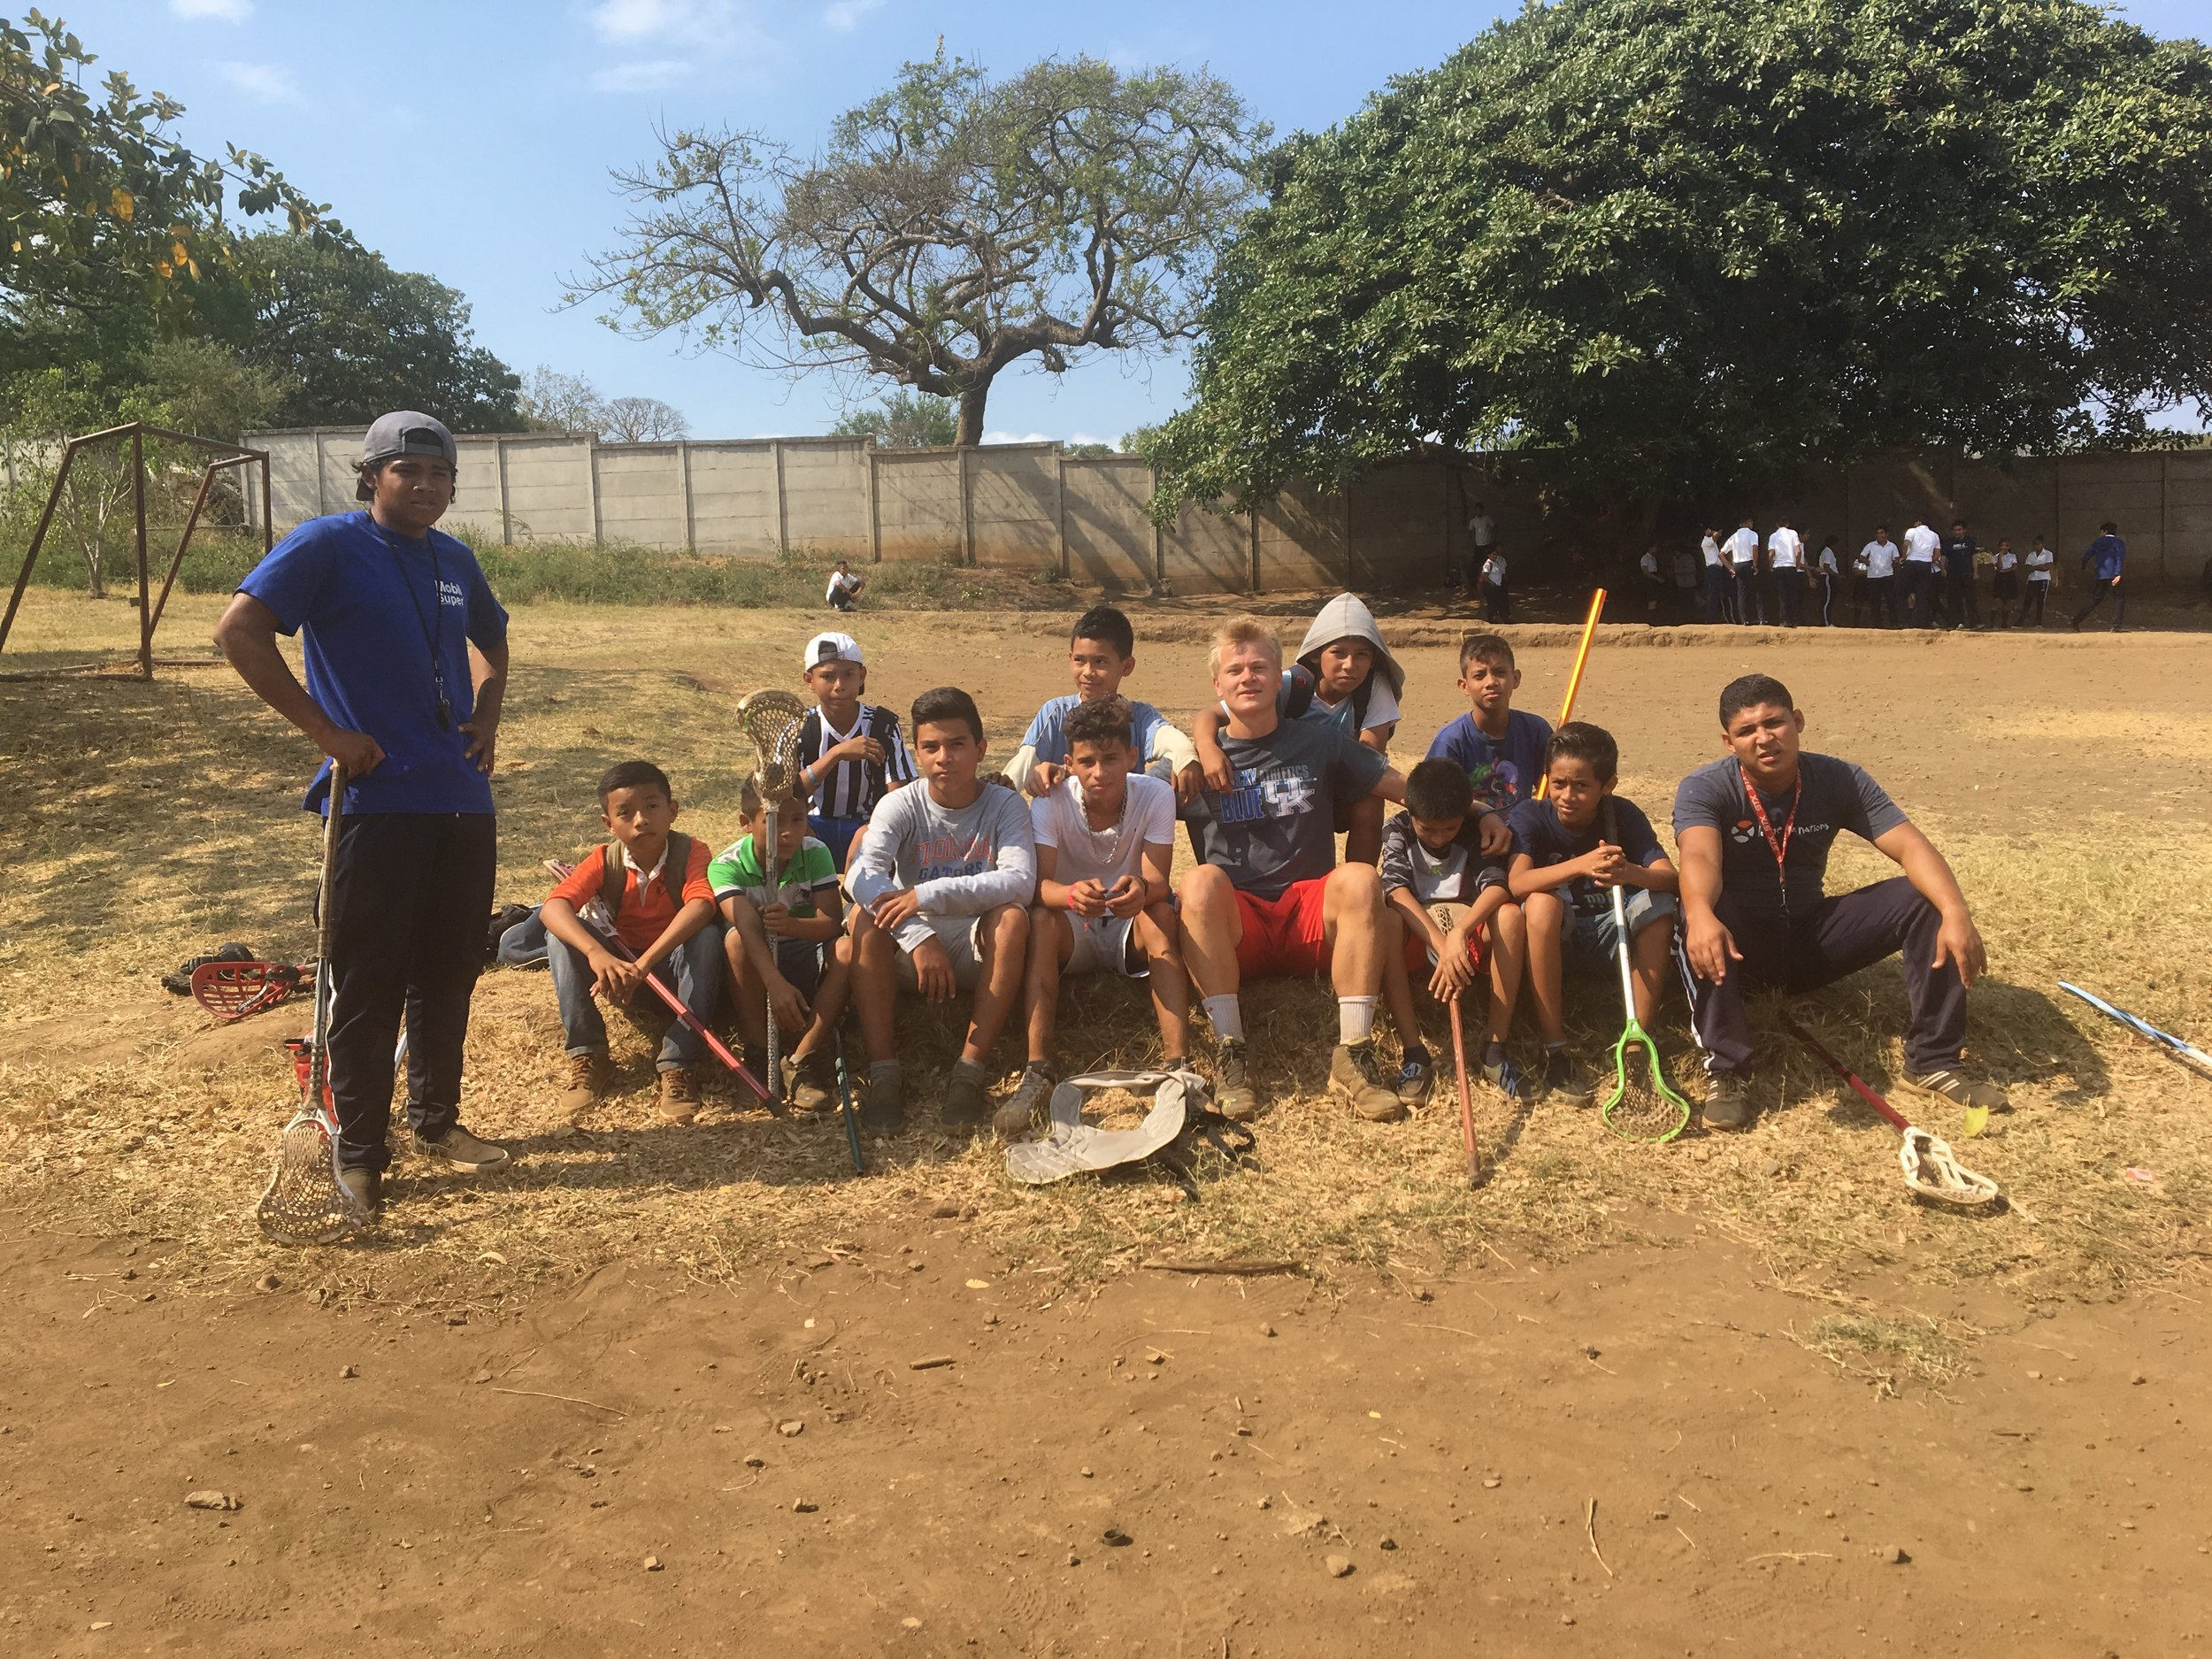 Coaches Freddy and David with PD, Lou, and Chiqui beginner players at morning lacrosse practice in Nicaragua.